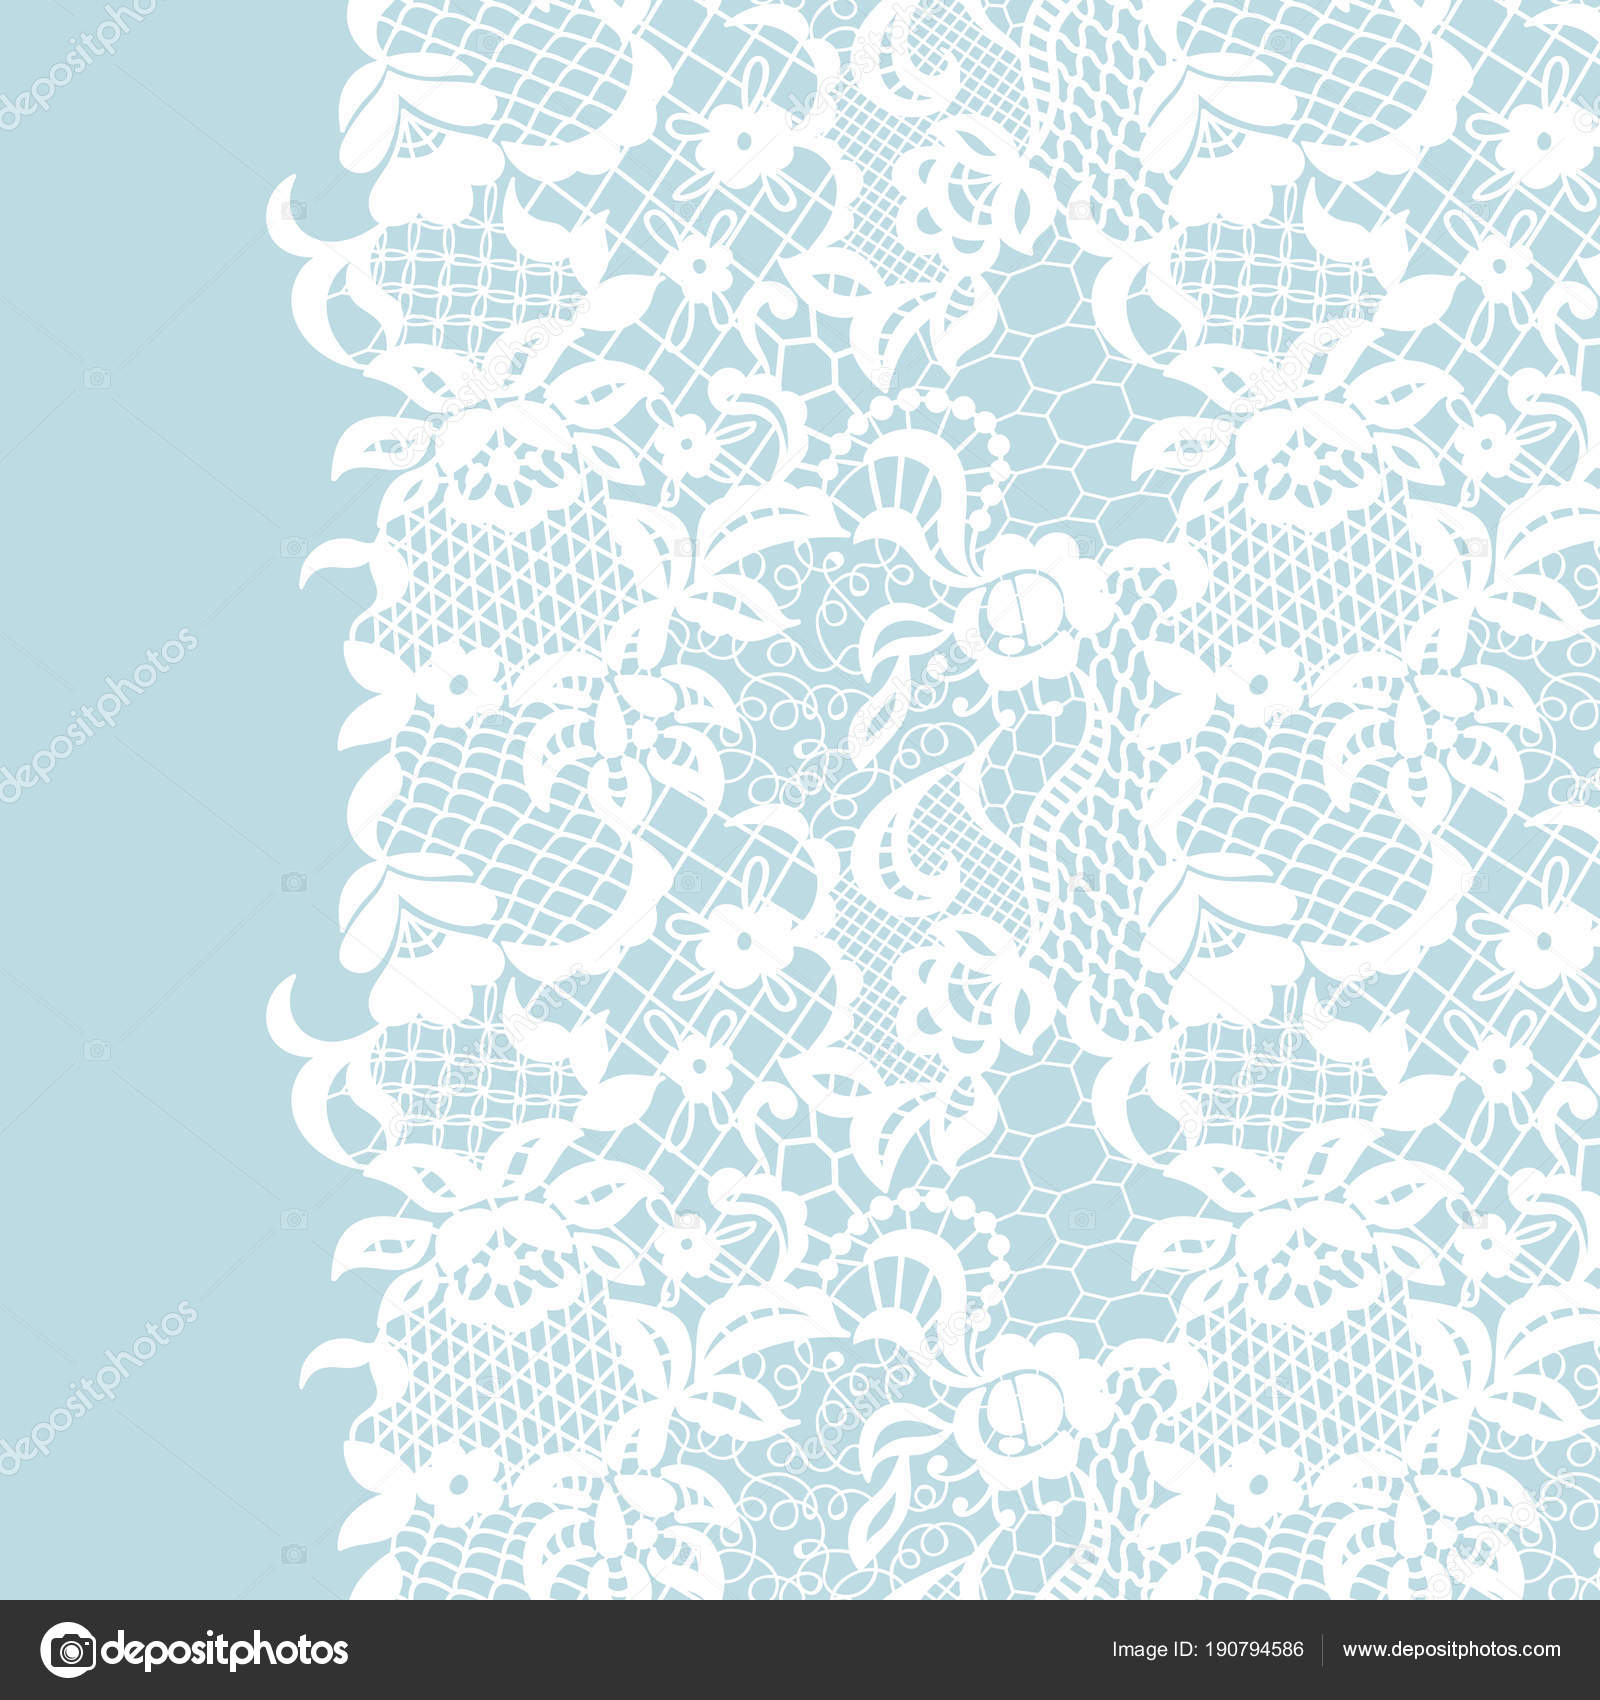 Seamless lace border invitation card stock vector comotom0 seamless lace border invitation card stock vector stopboris Image collections